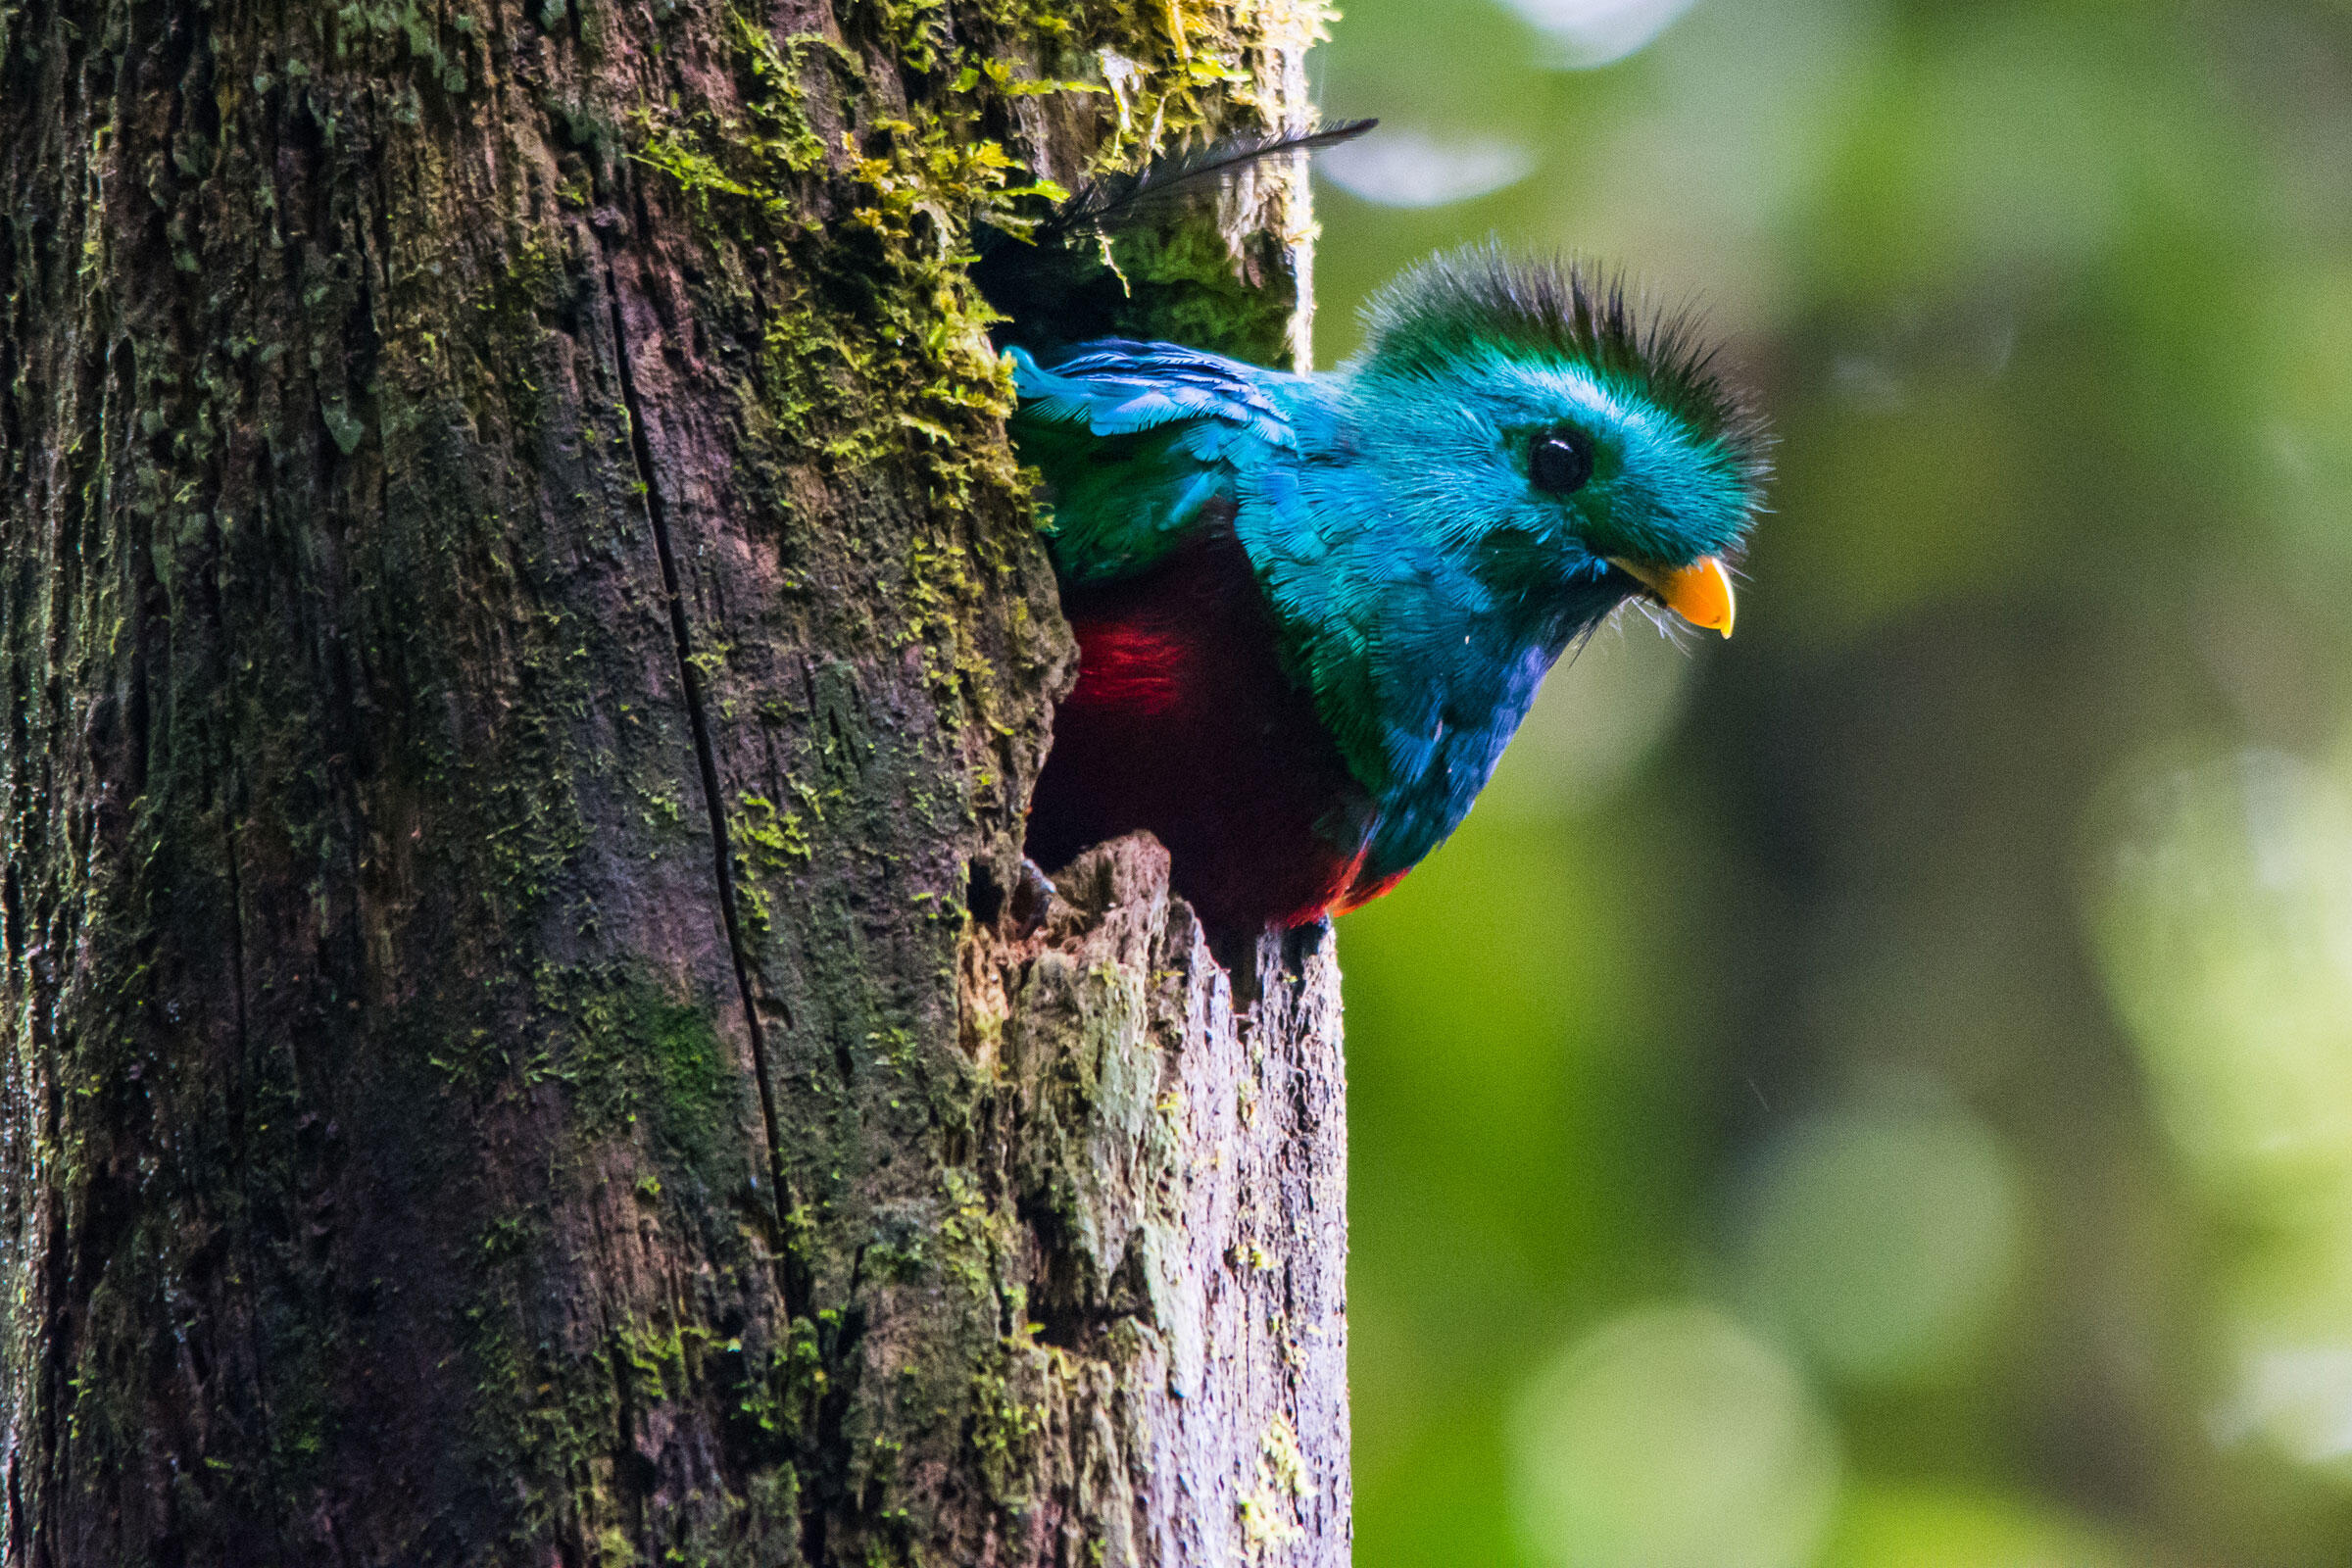 ecotourism in south american countries essay Welcome welcome to eco tourism america the largest eco portal devoted to promoting all kinds of nature based travel in the americas.